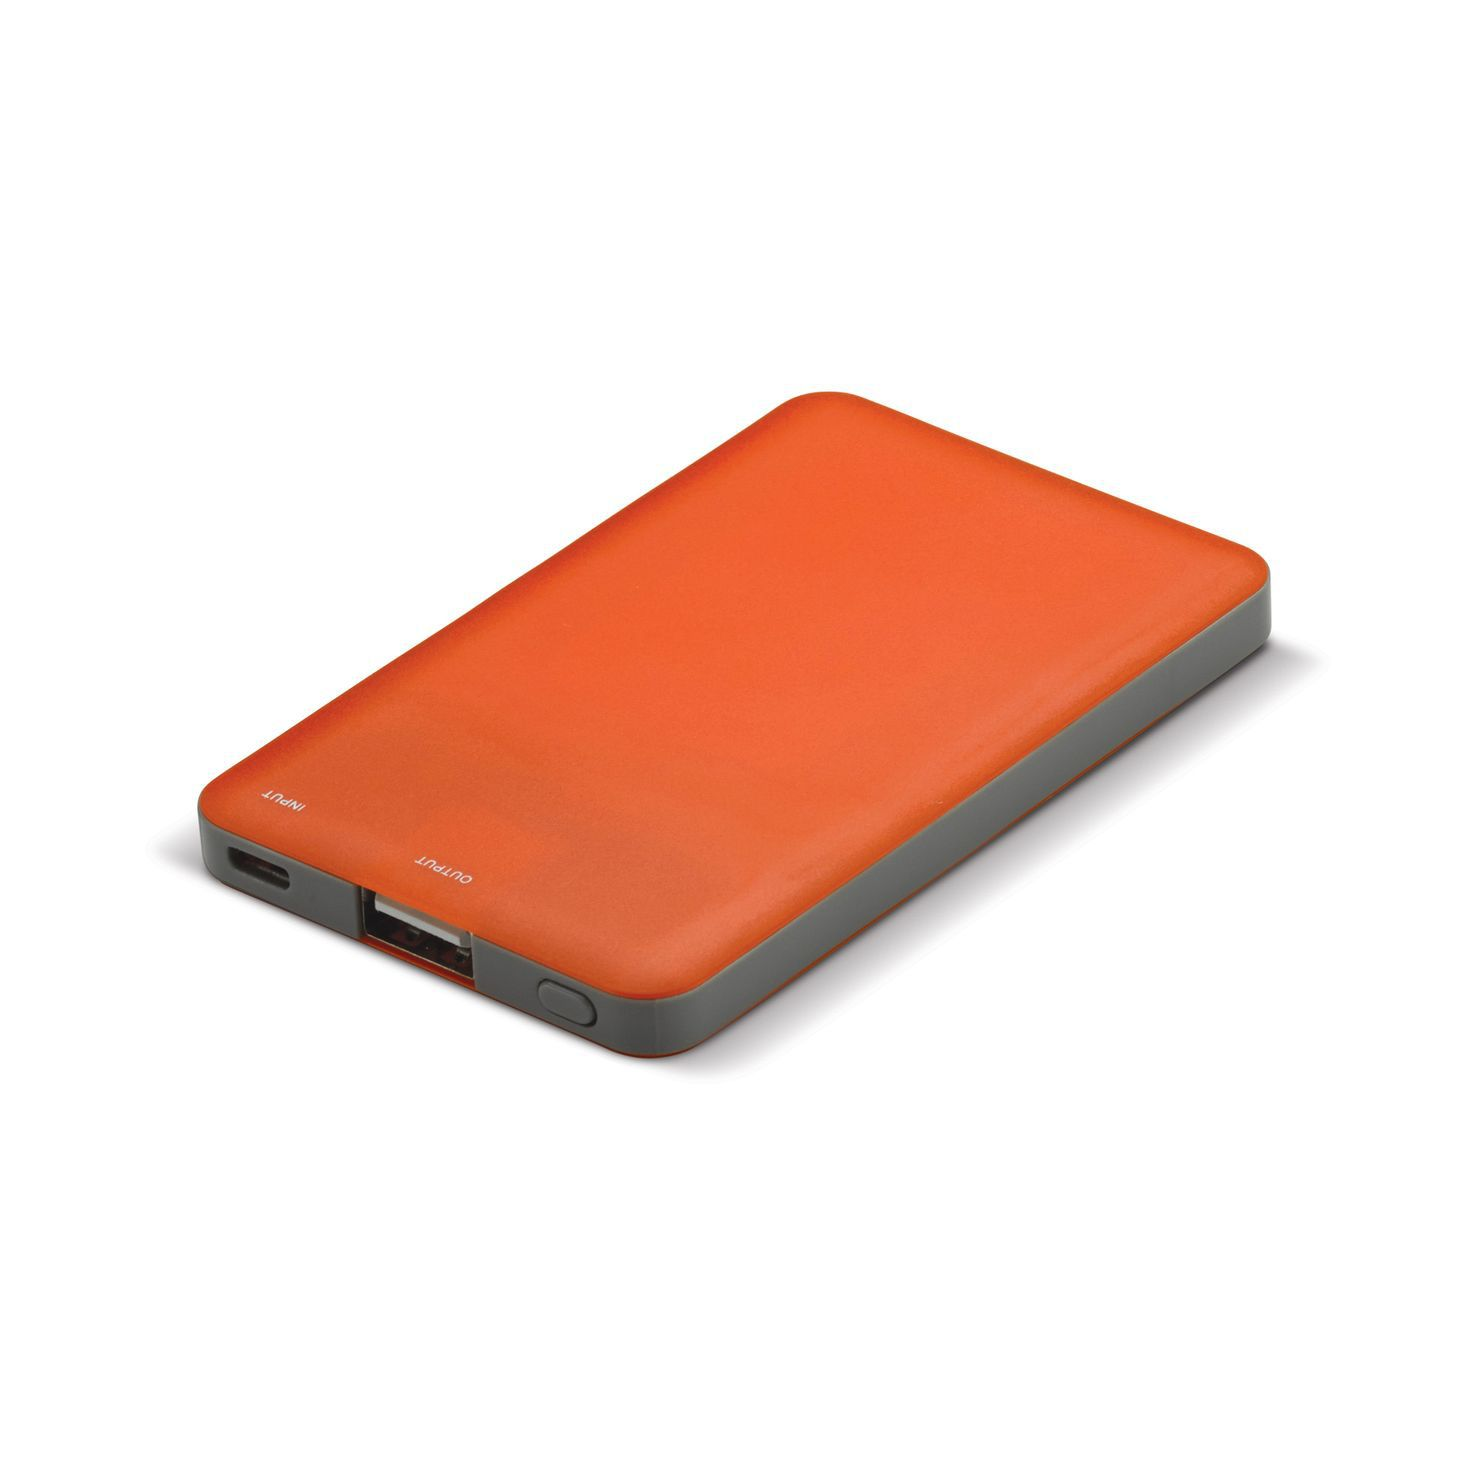 Oranje Powerbank | Led indicatie | 2000 mAh